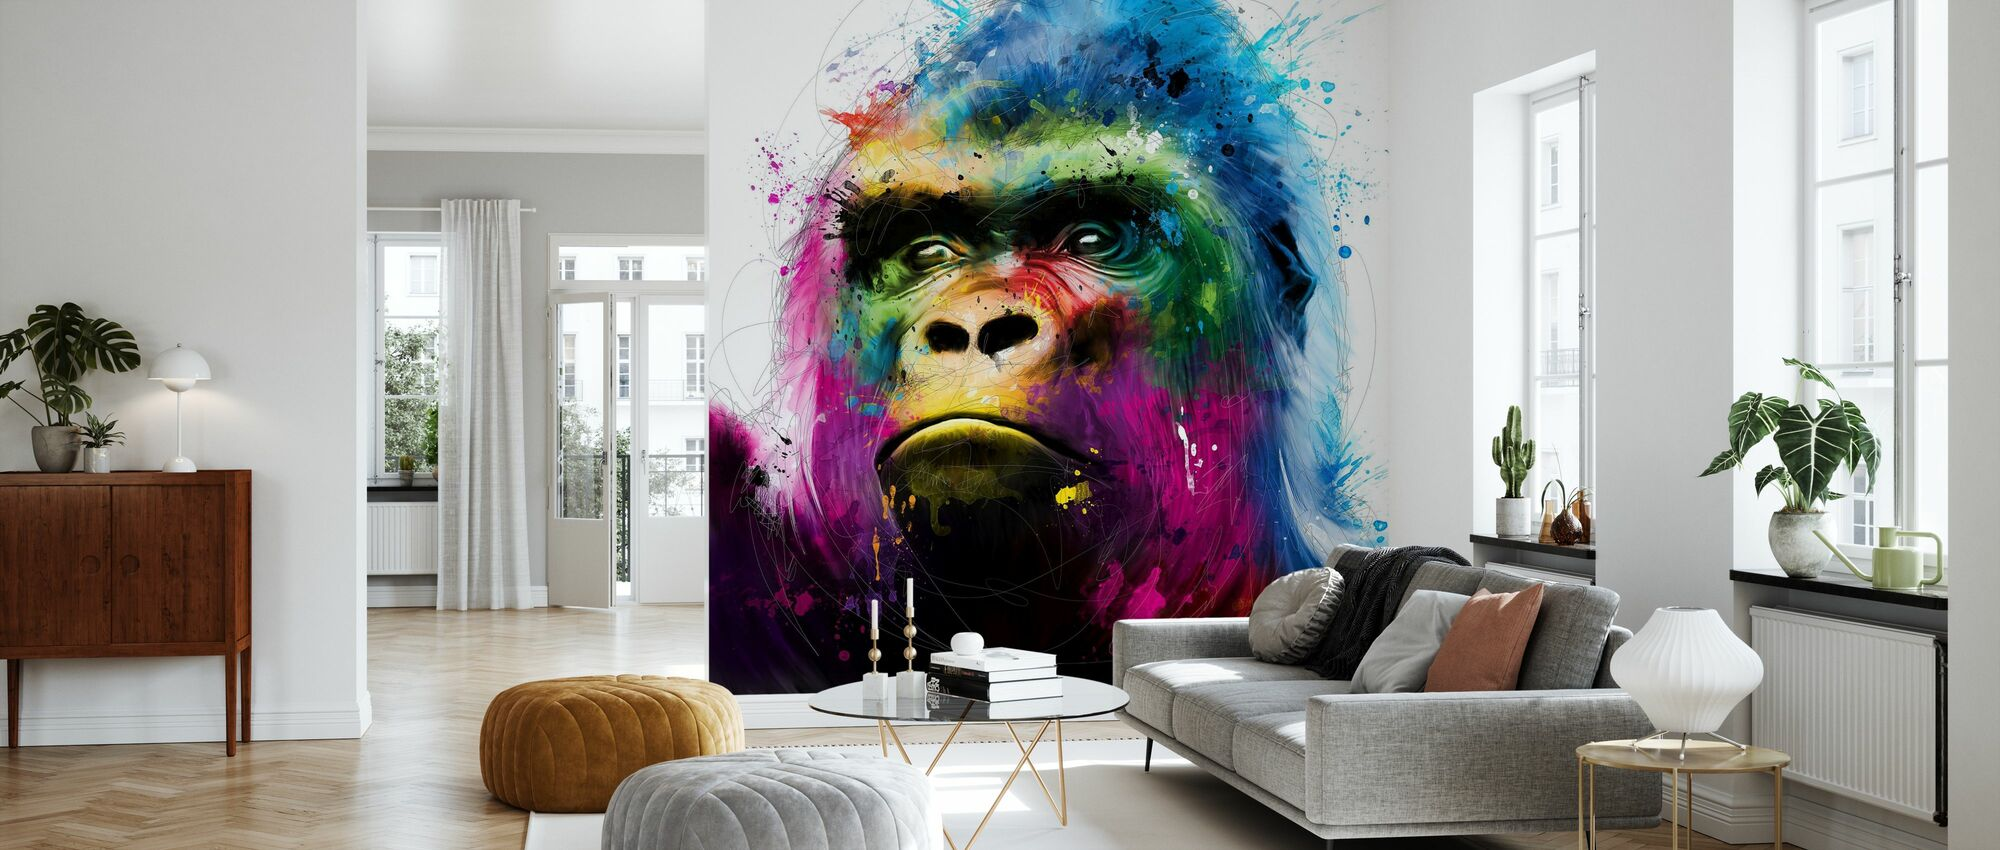 Gorilla - Wallpaper - Living Room